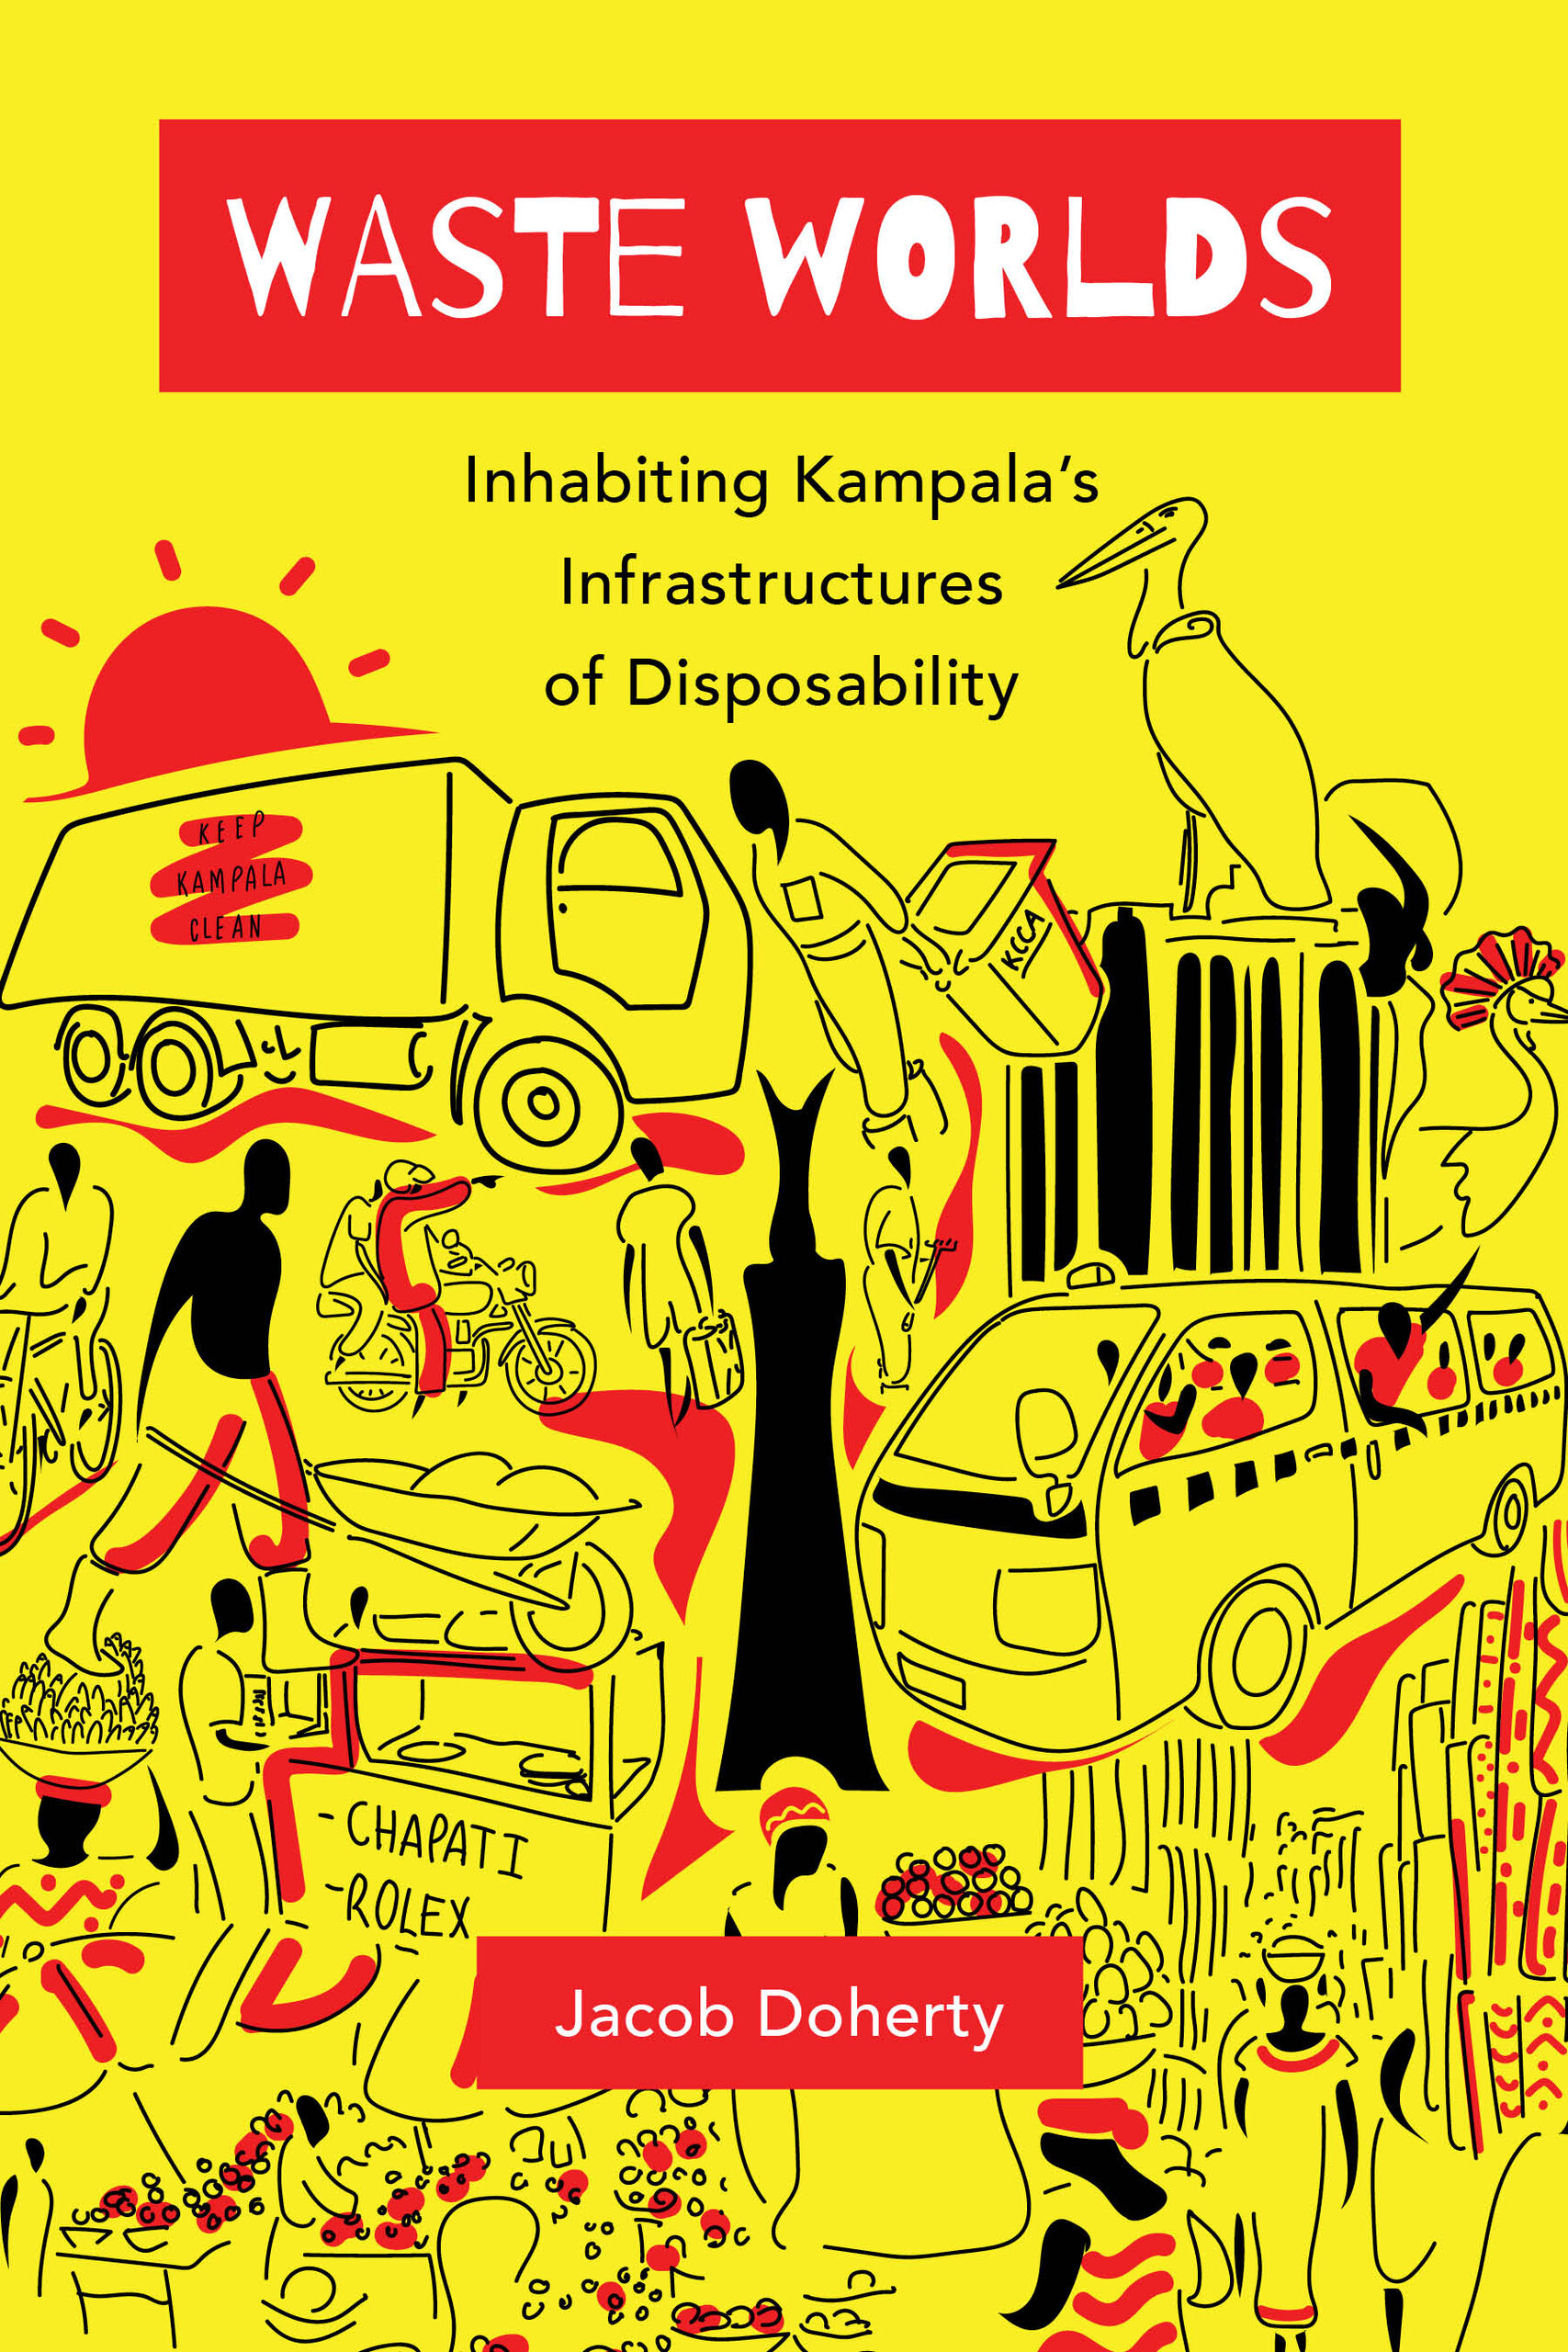 Waste Worlds: Inhabiting Kampala's Infrastructures of Disposability Jacob Doherty